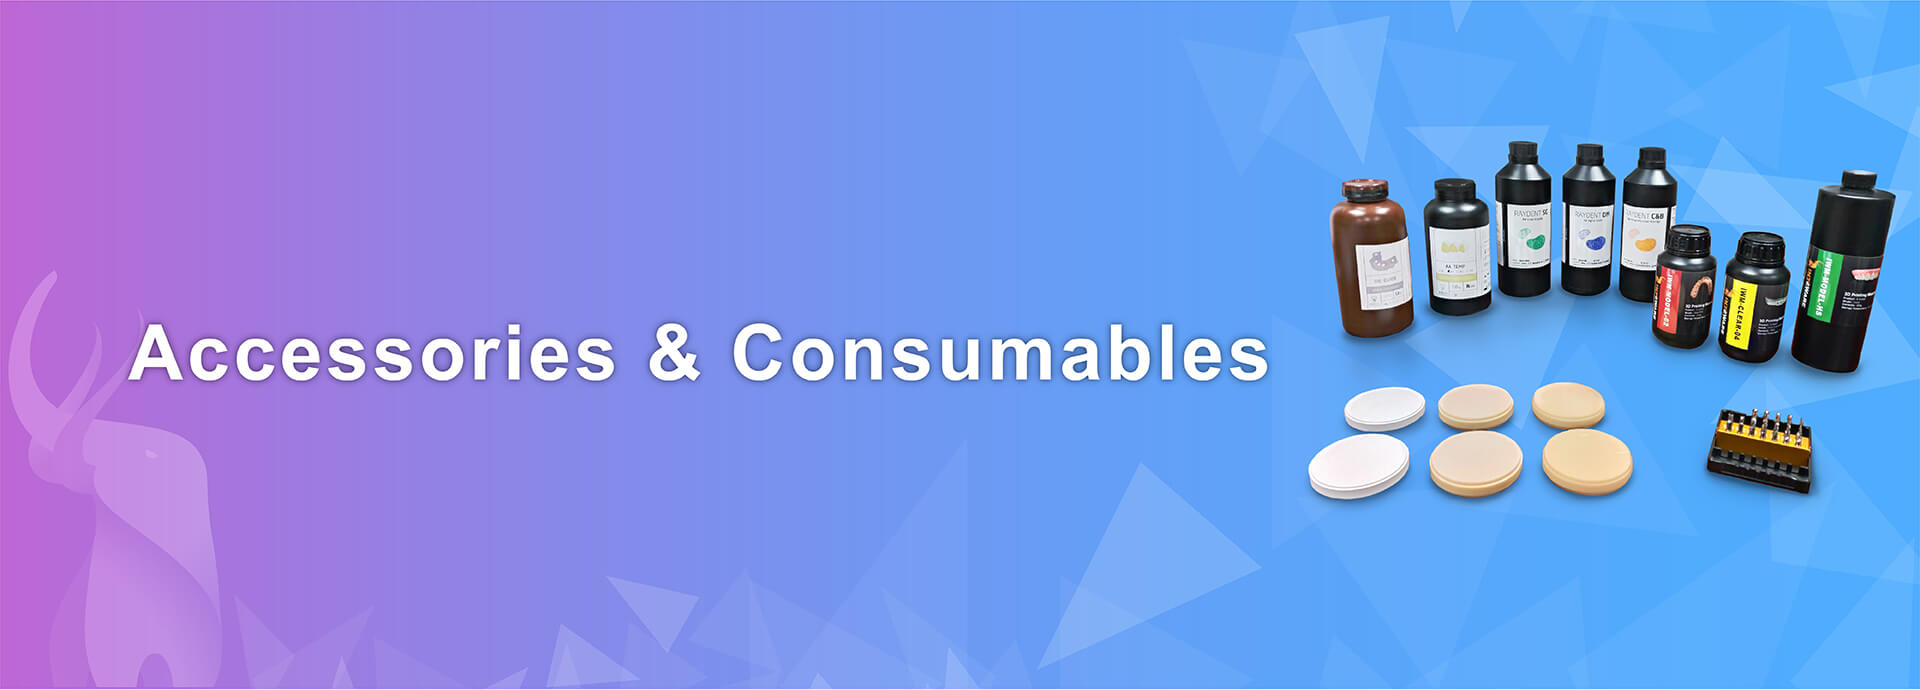 T-Eng_Accessories&Consumables